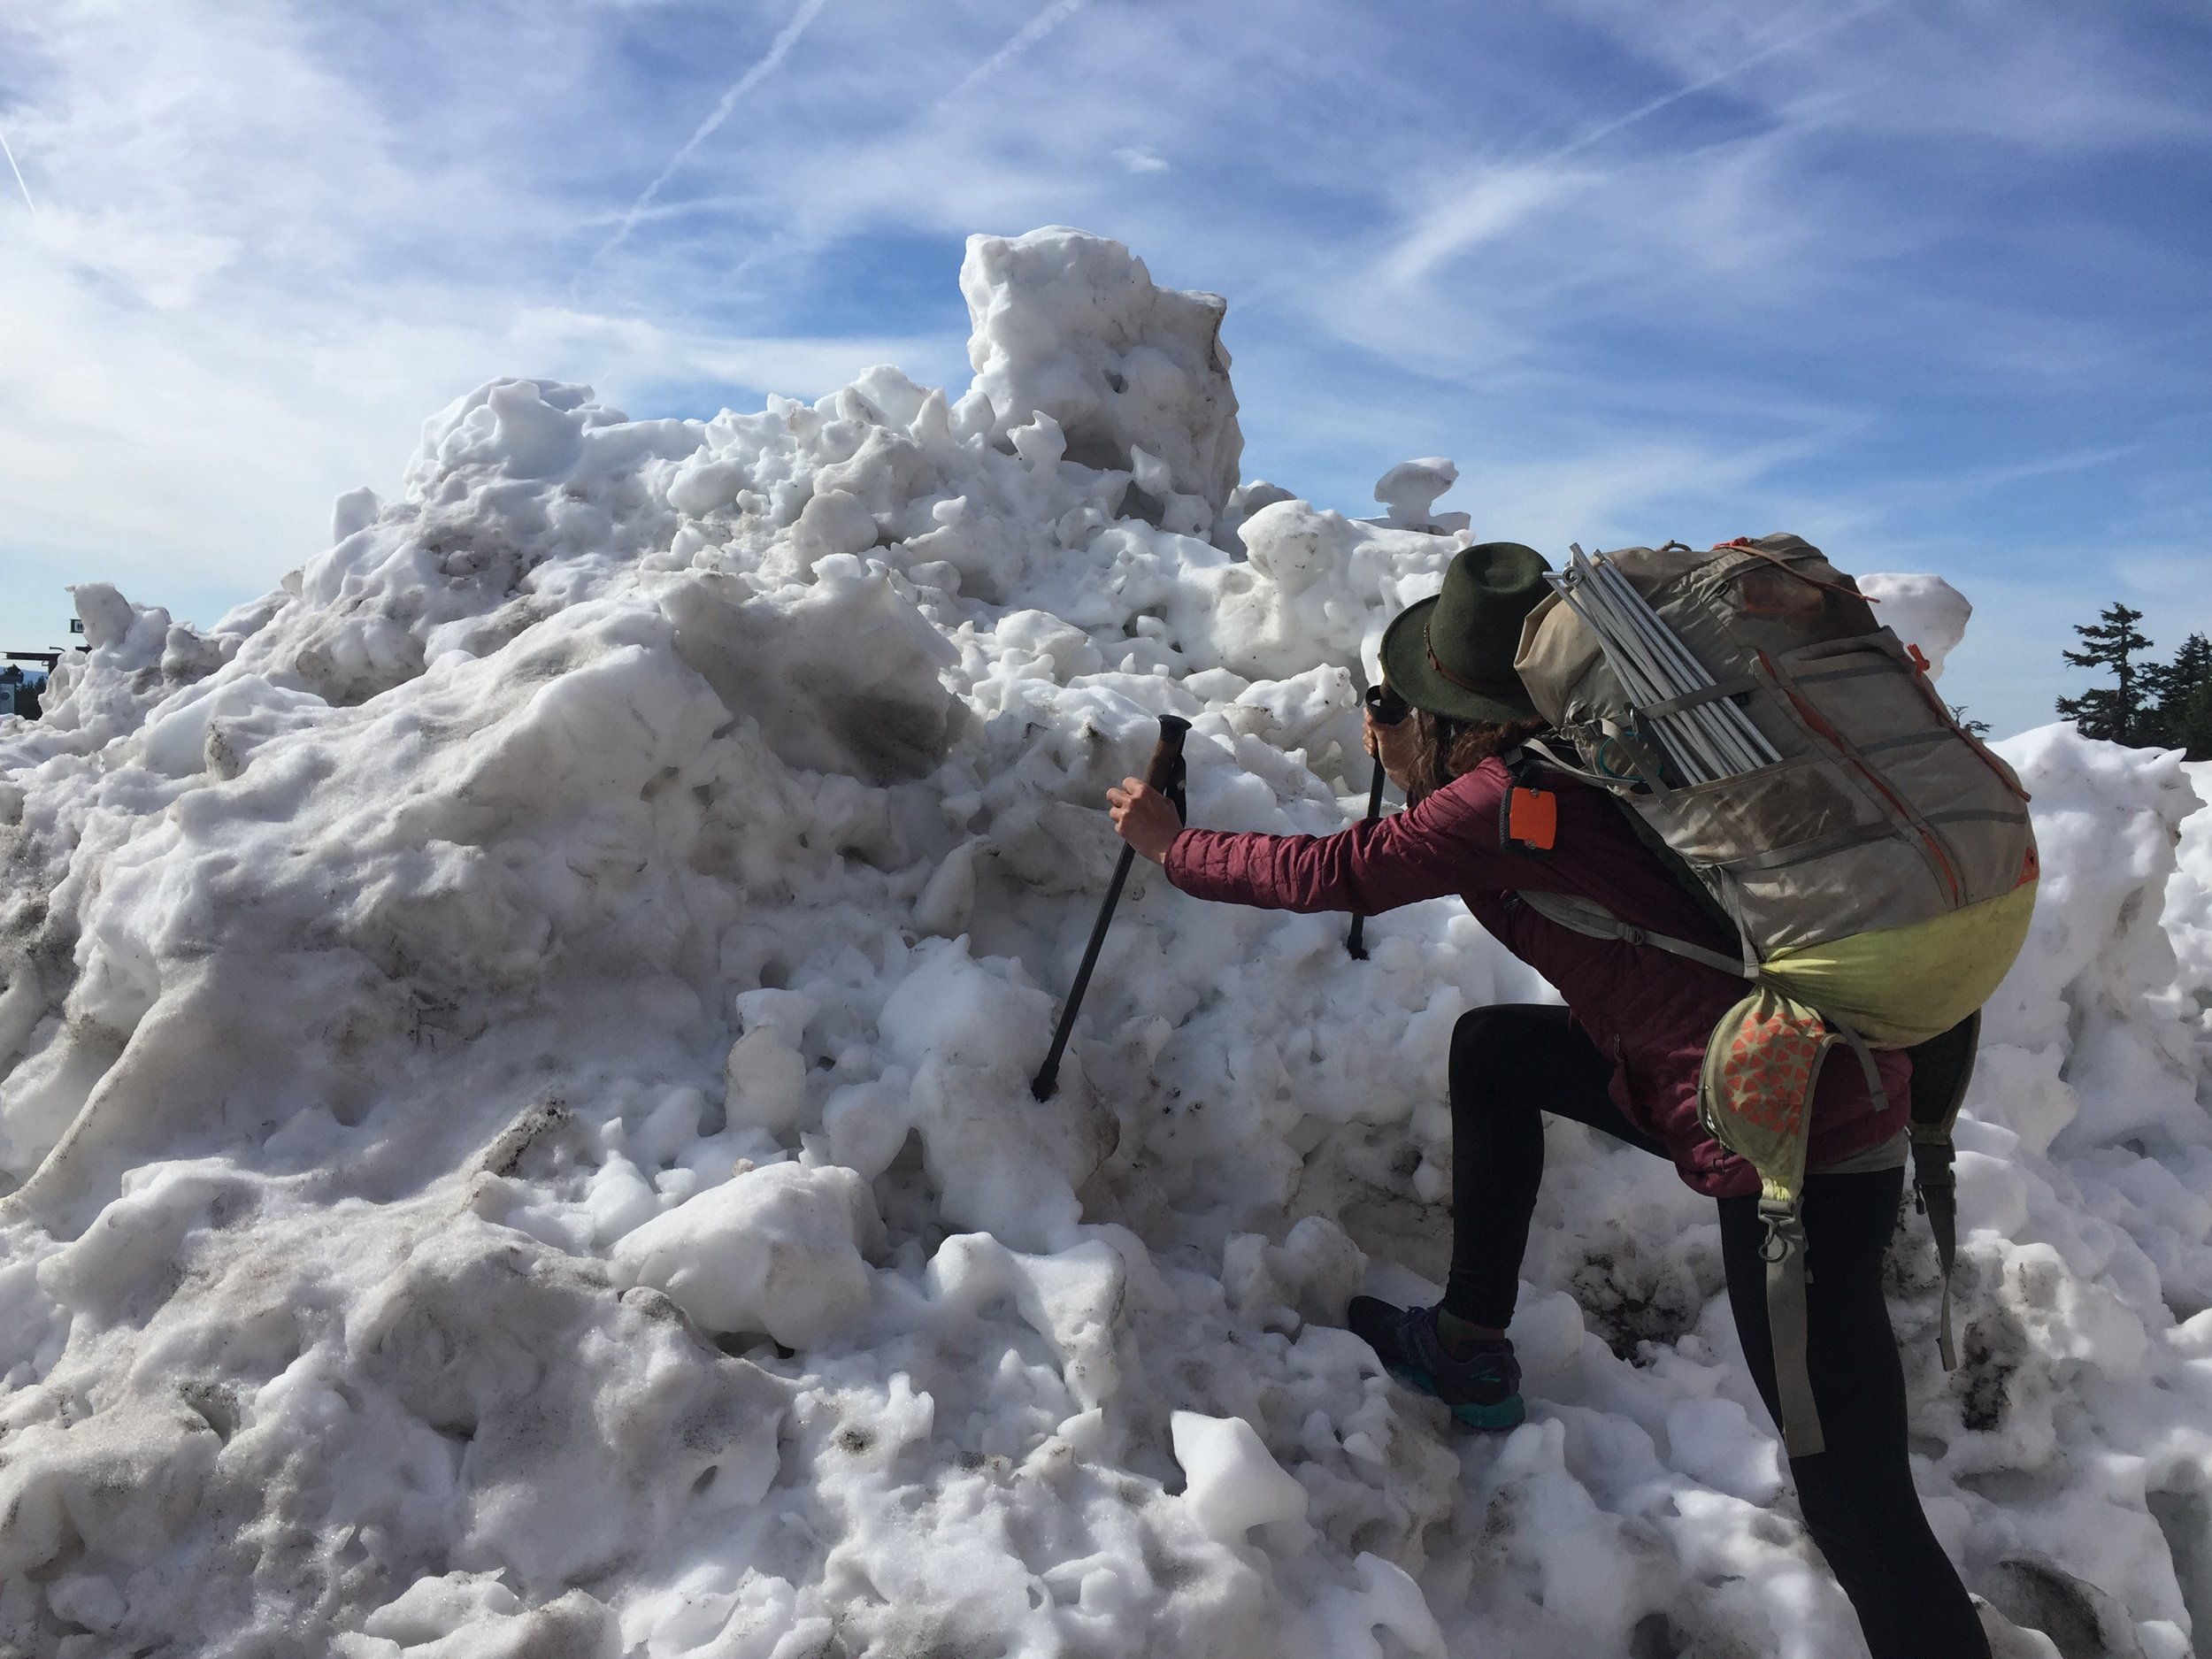 Me playing on a snow pile